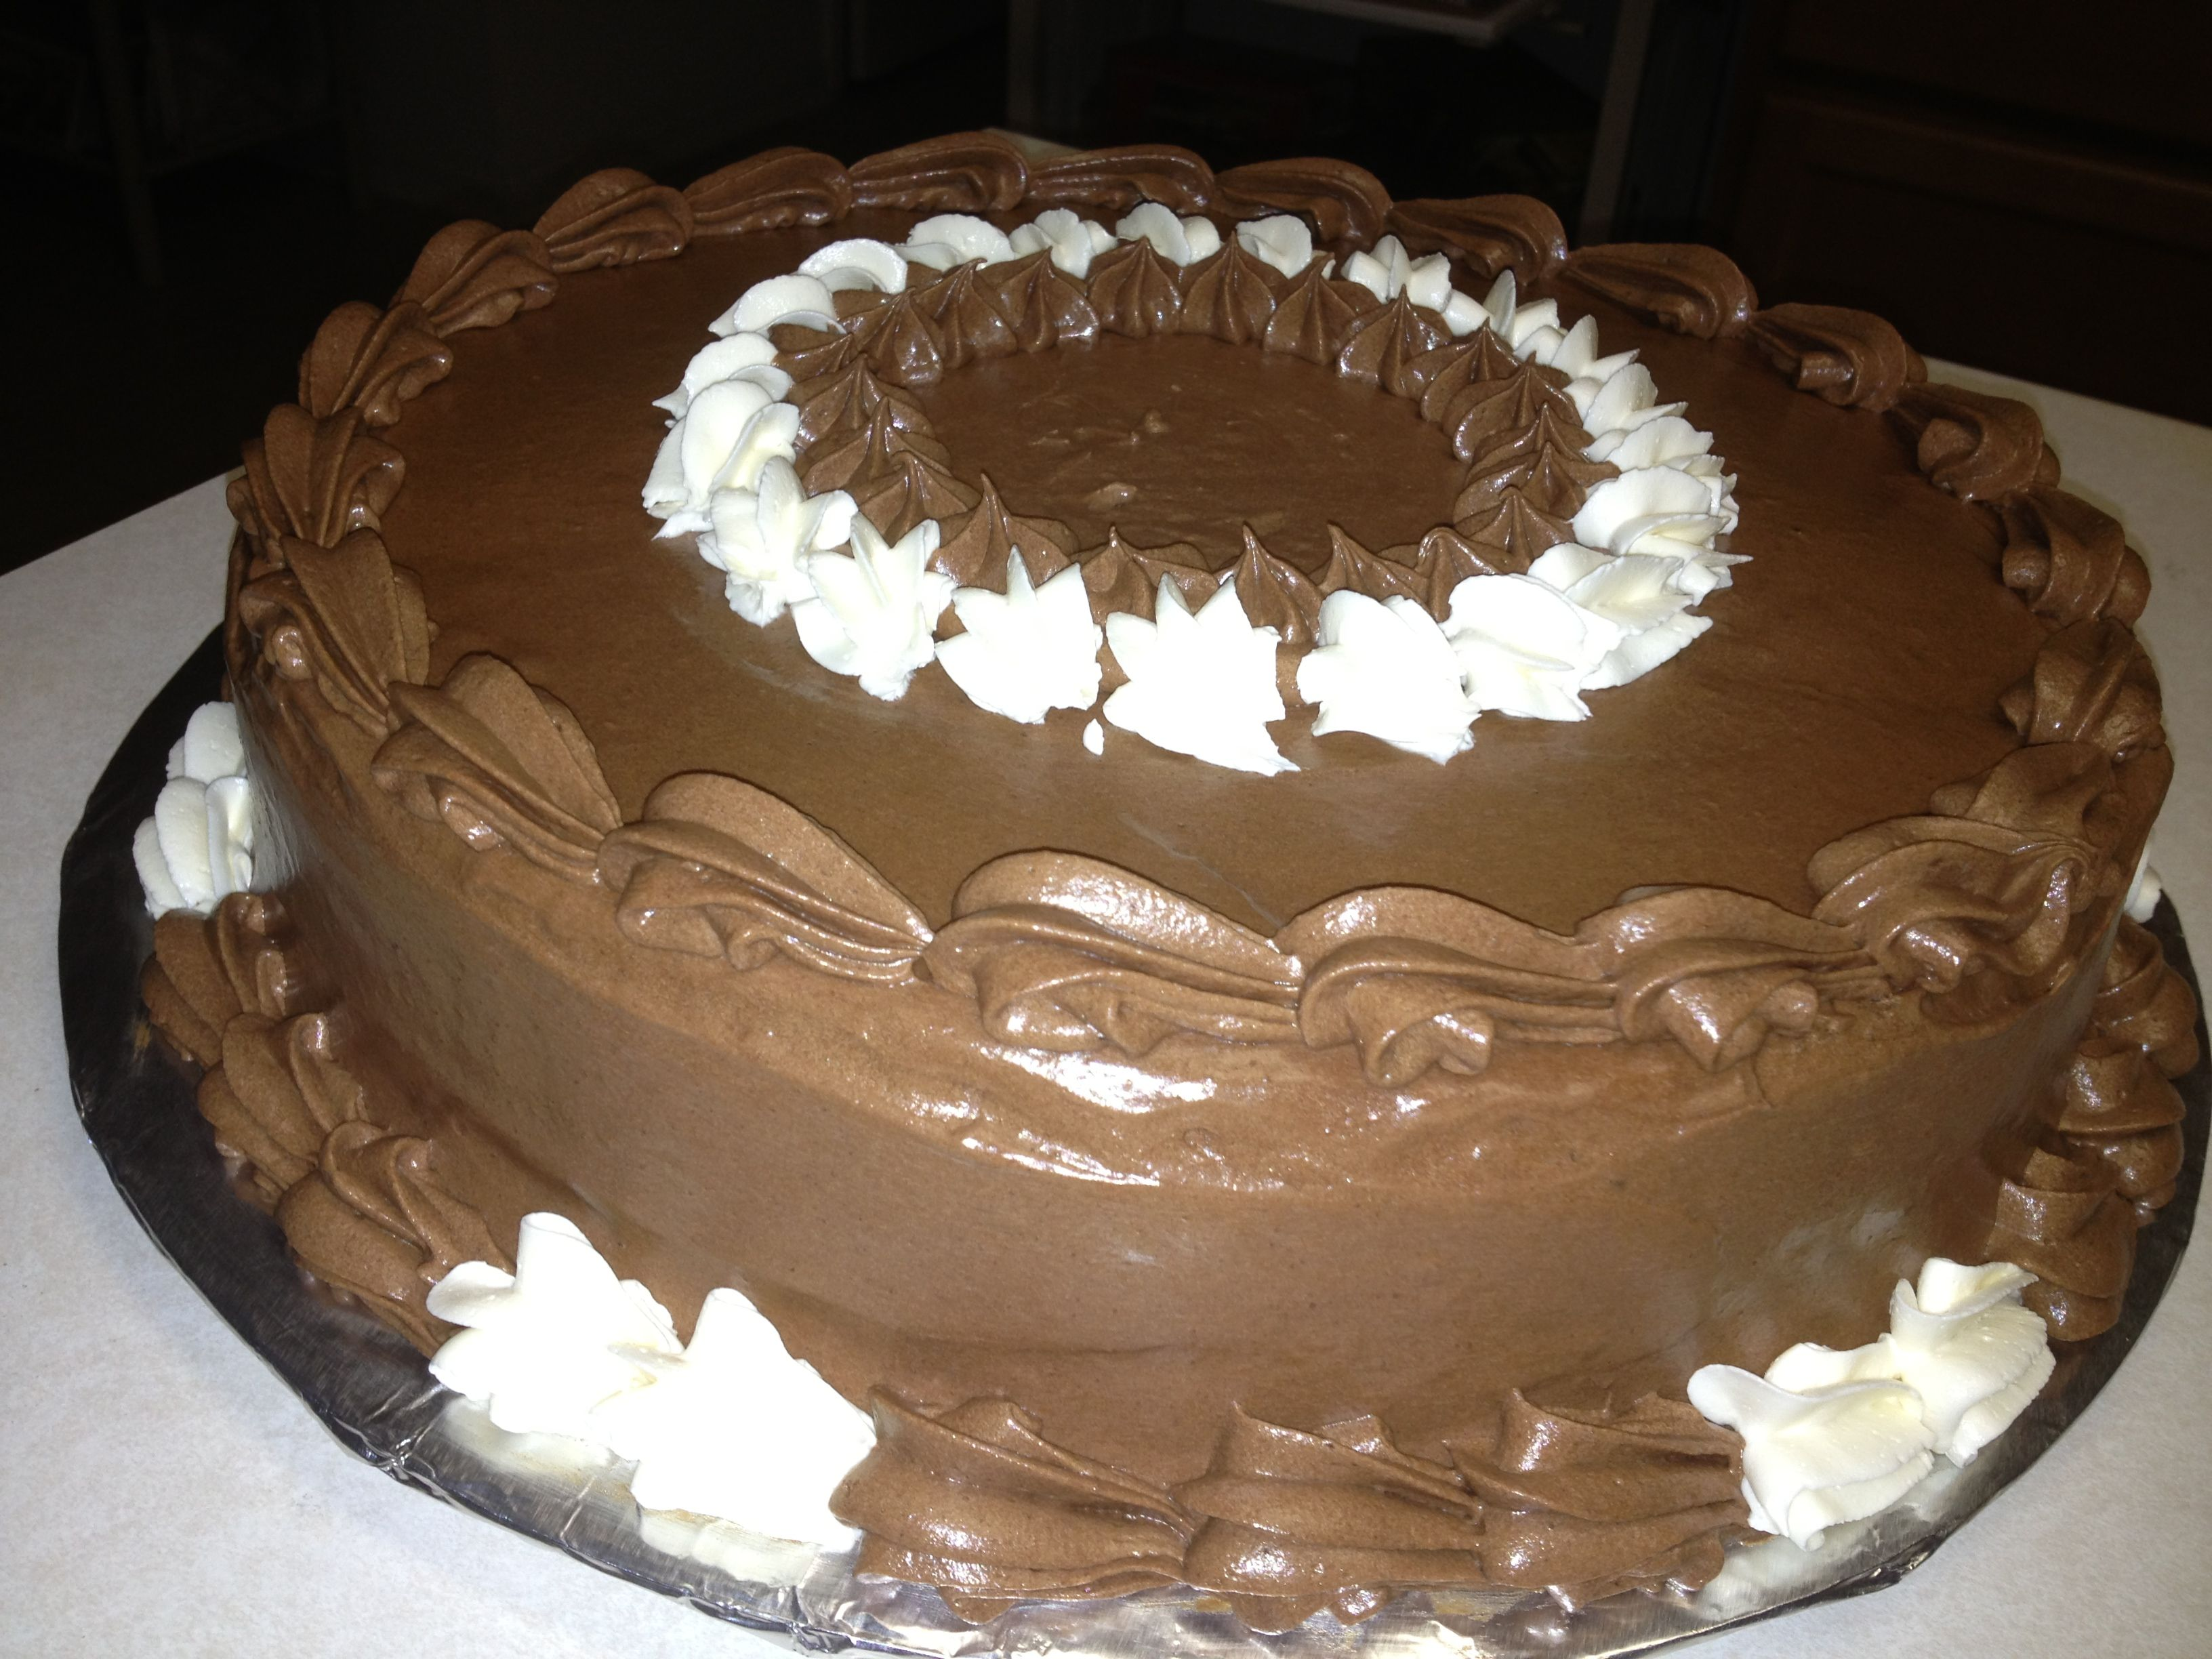 Chocolate cake chocolate icing Cake ideas Pinterest